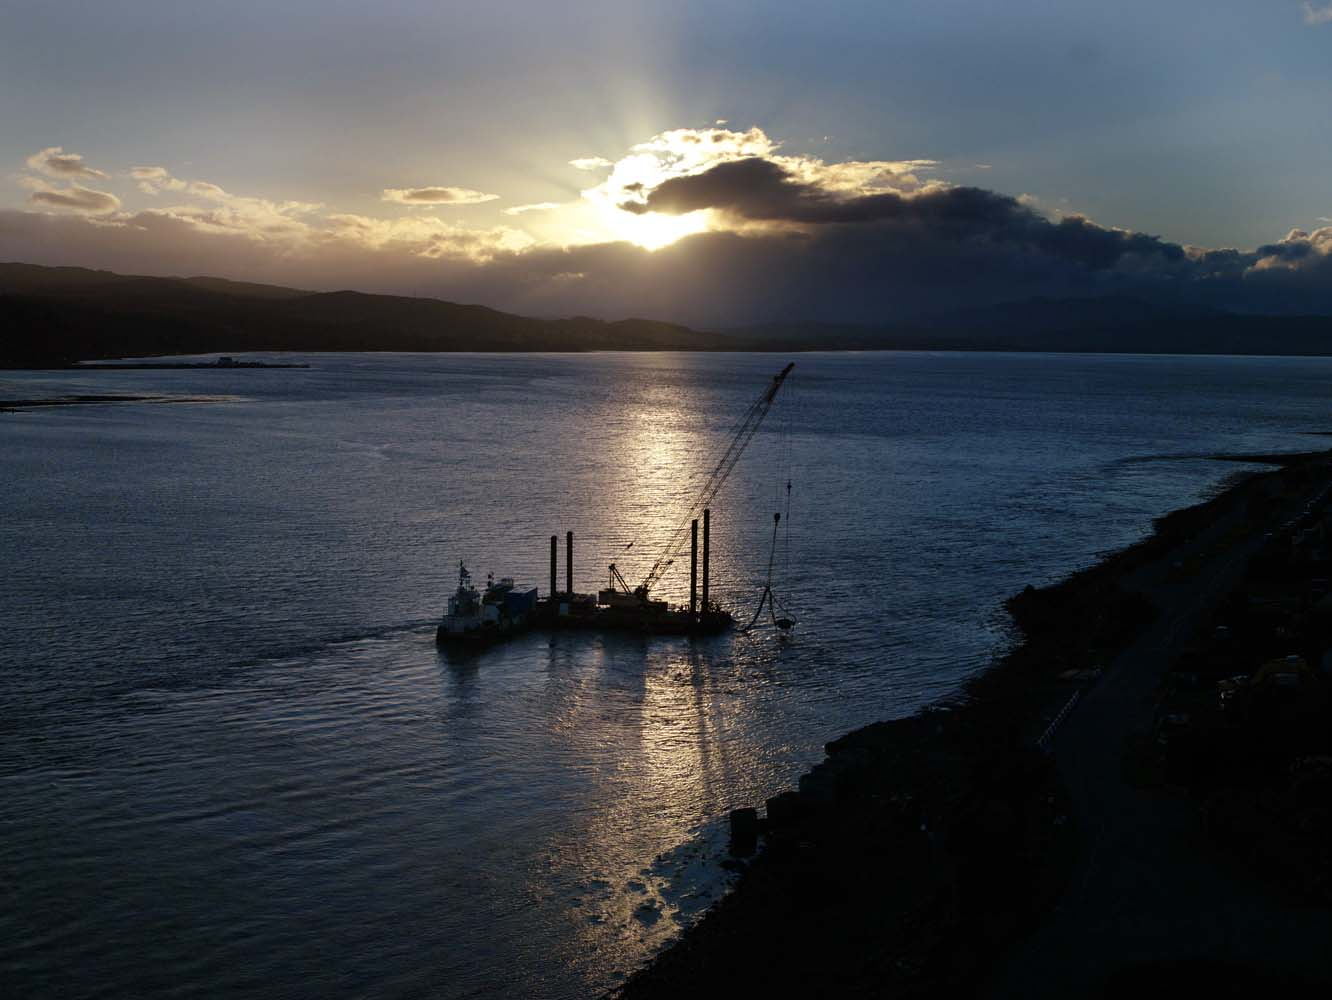 Pipelaying Beauly Firth for Morrison Construction